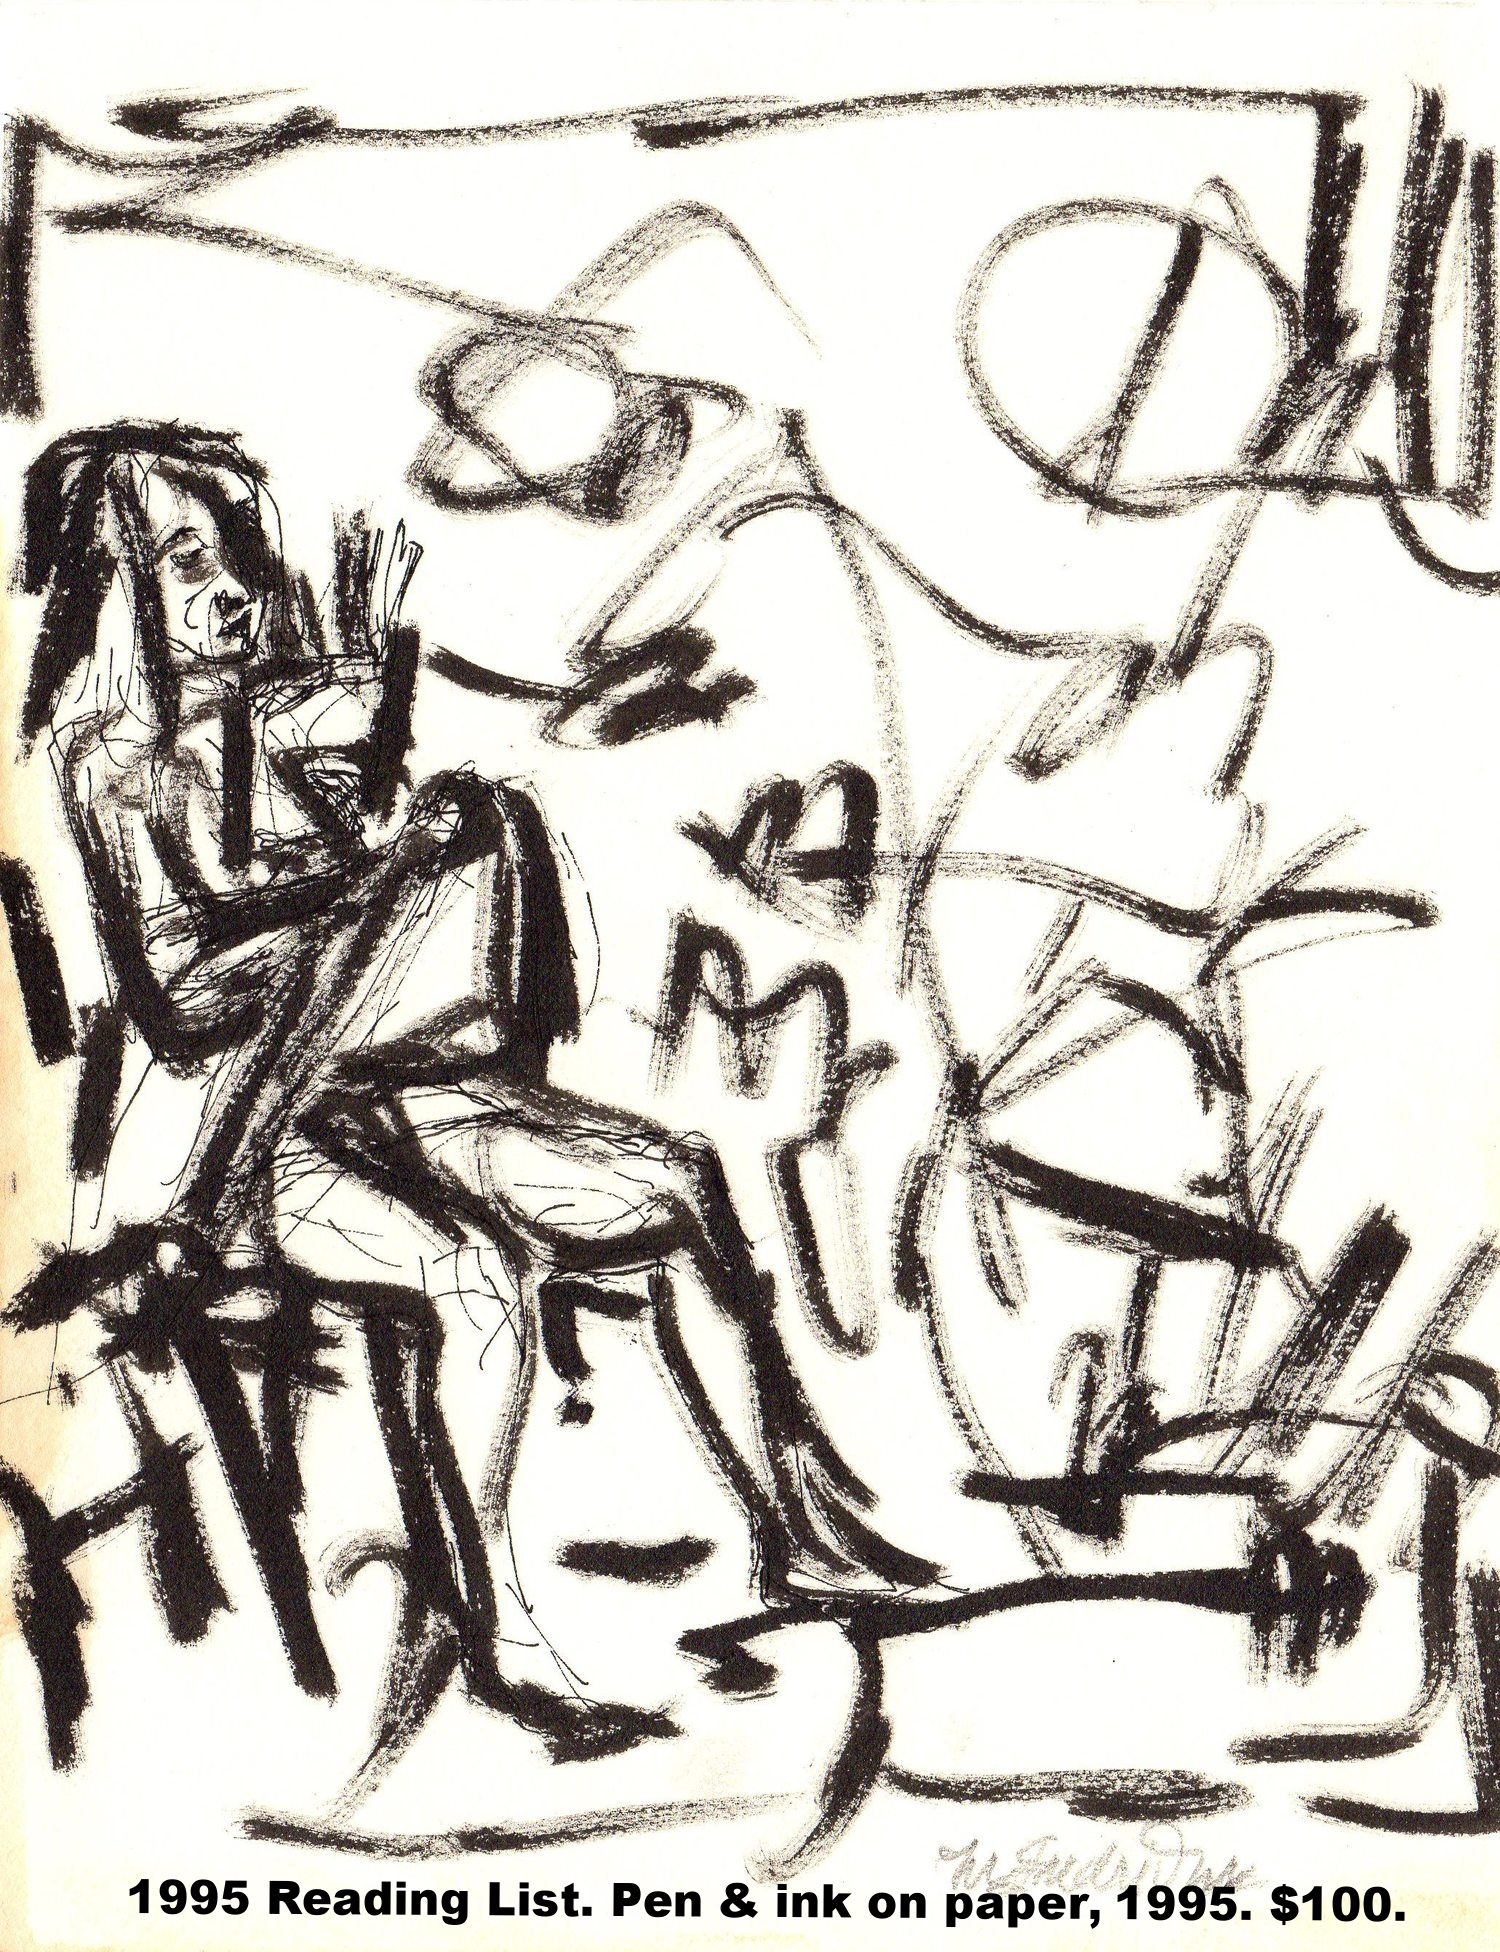 Fred Wise 1995 Reading List Pen and ink on paper 7 in x 9 in 1995.jpg